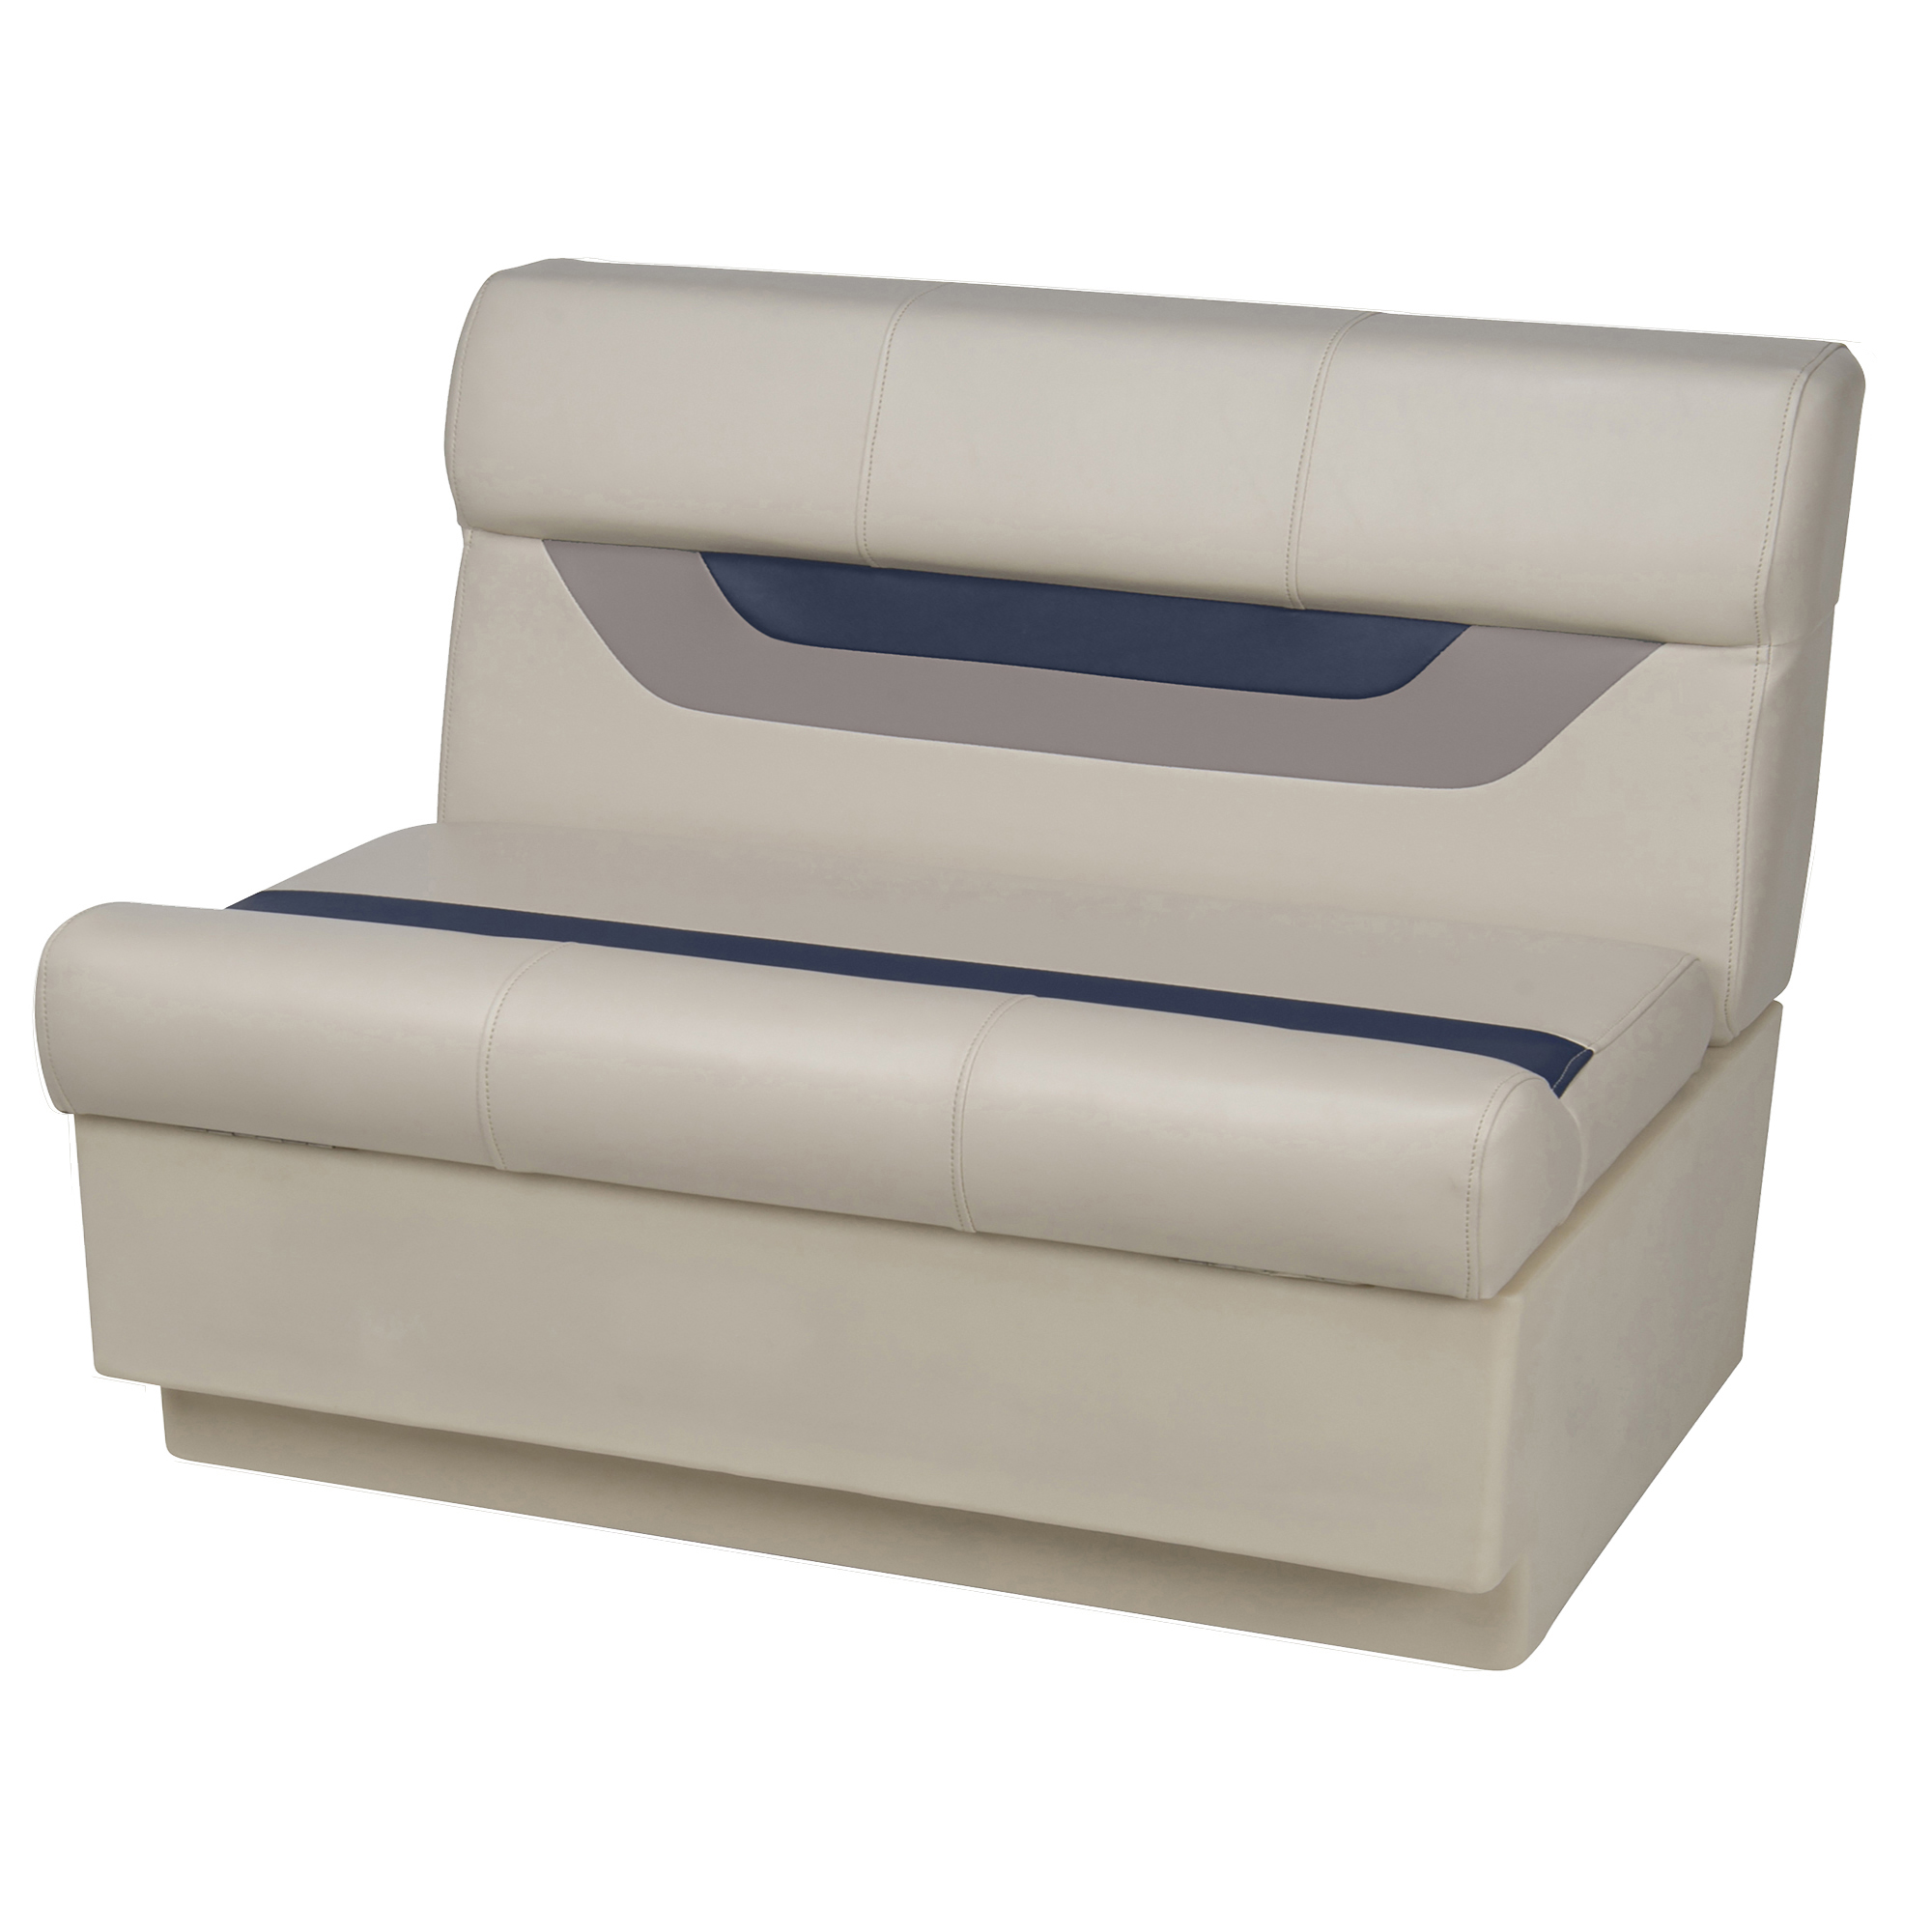 "Toonmate Designer Pontoon 36"" Wide Bench Seat - TOP ONLY"